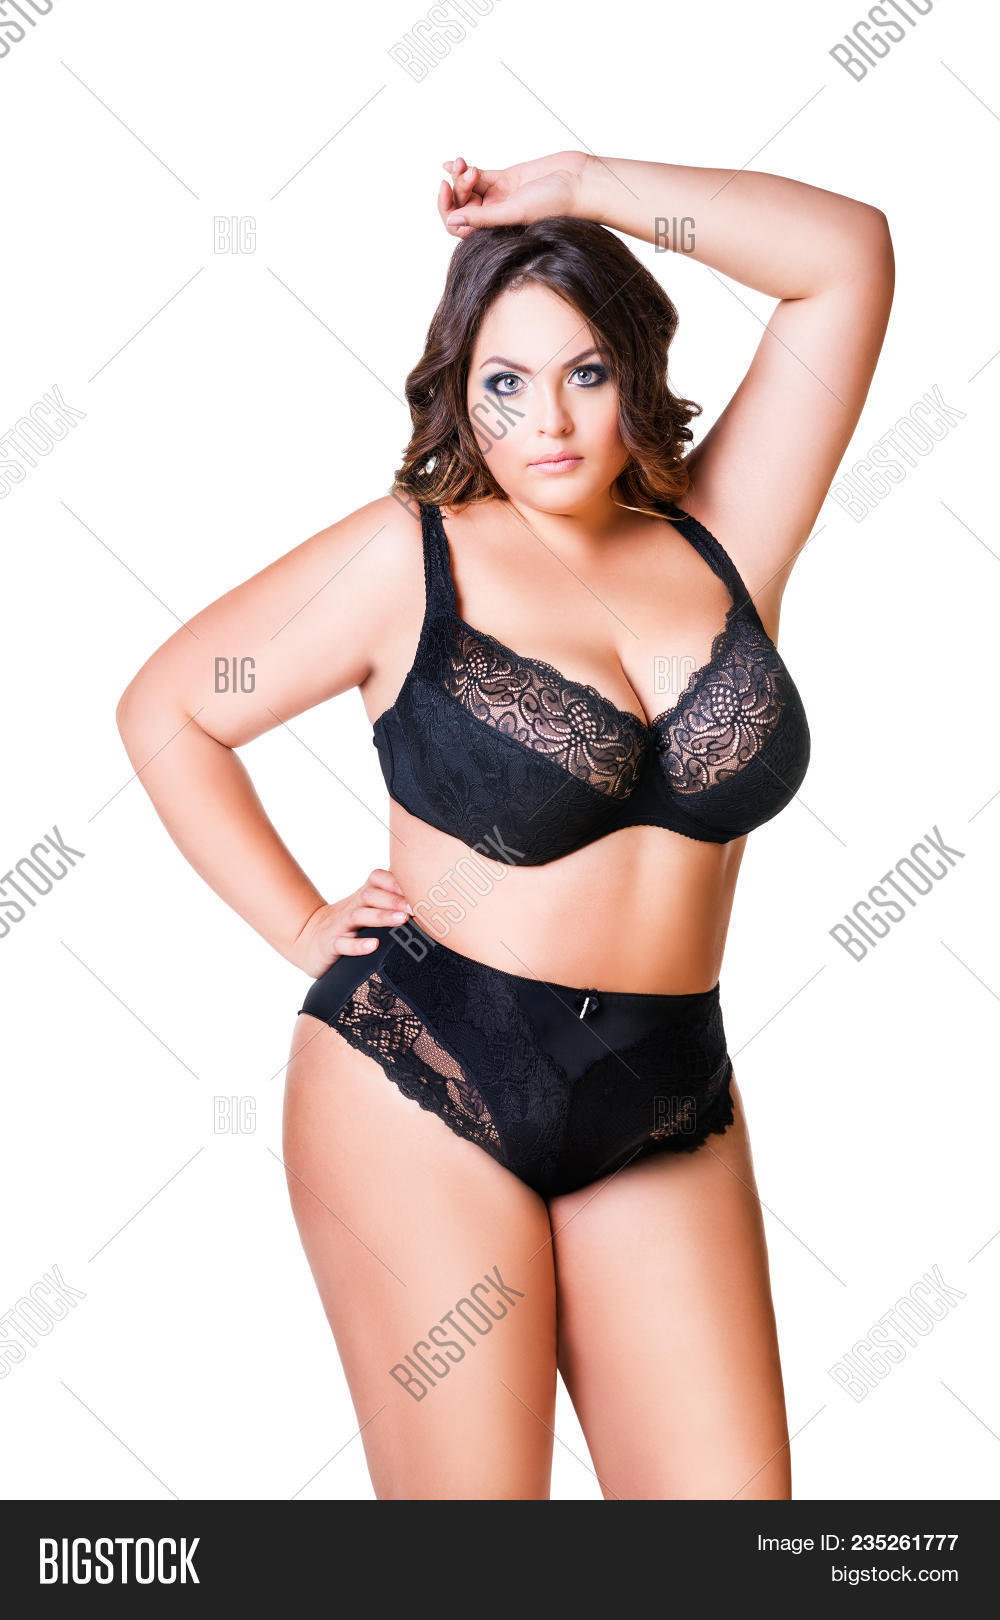 Chubby female underware models